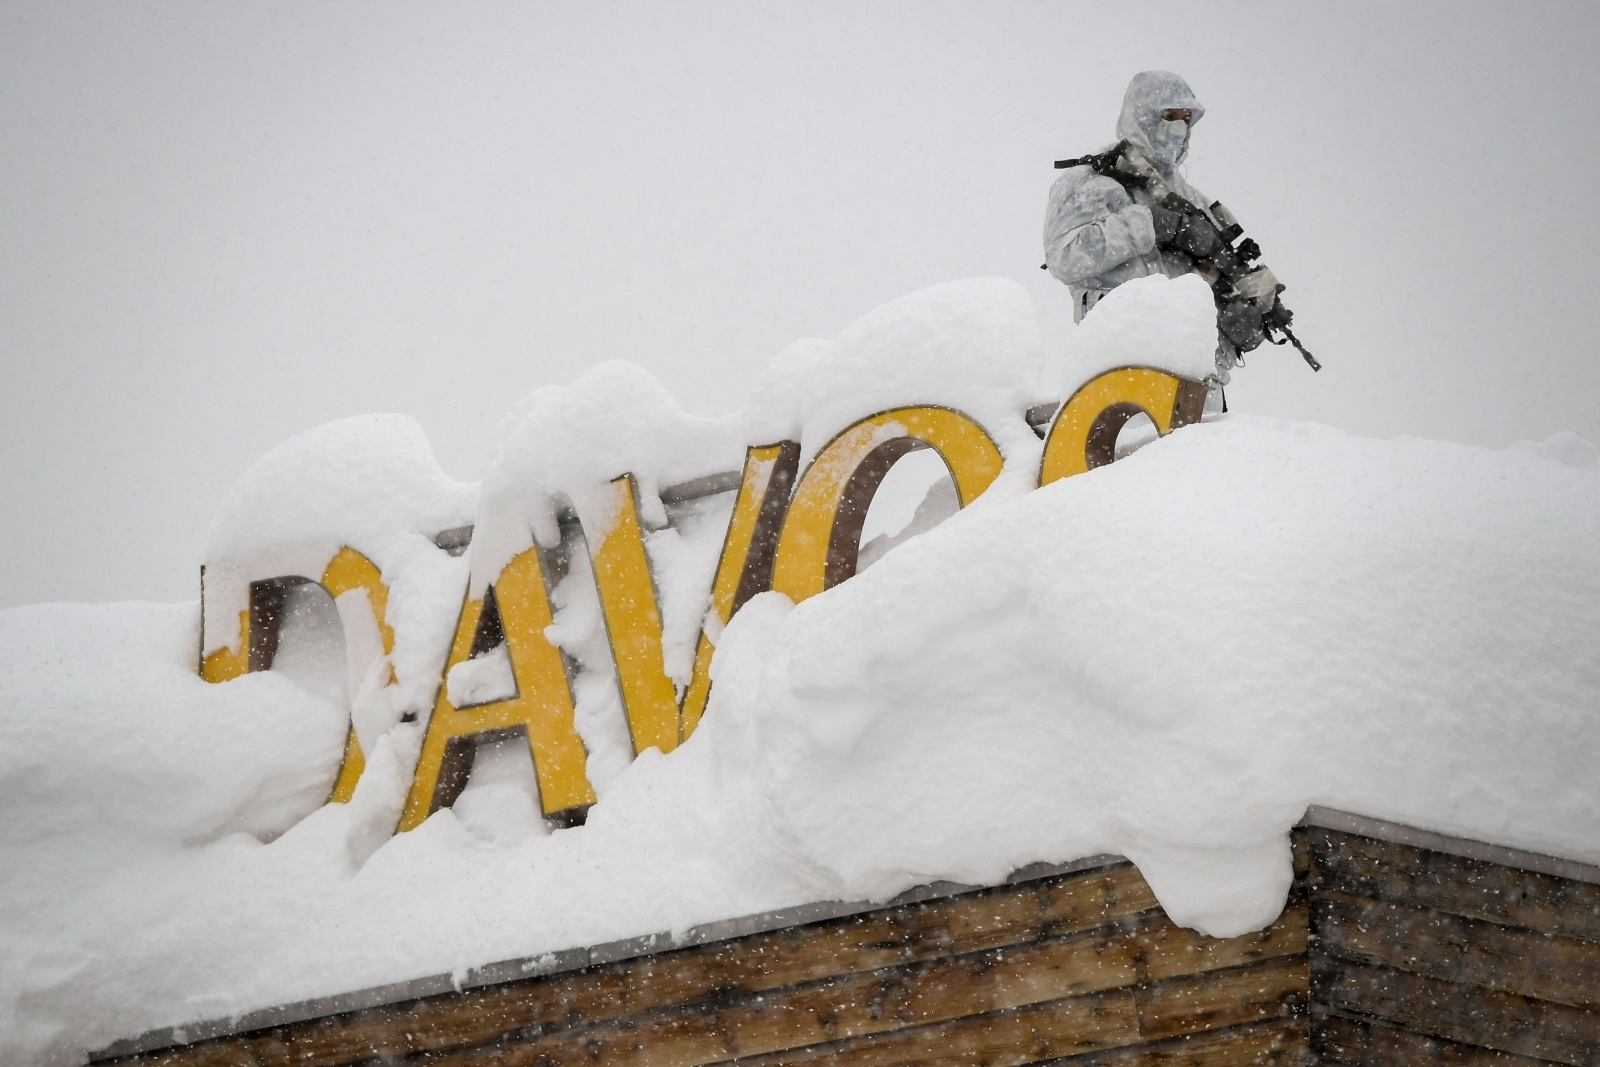 Sniper at the Davos summit